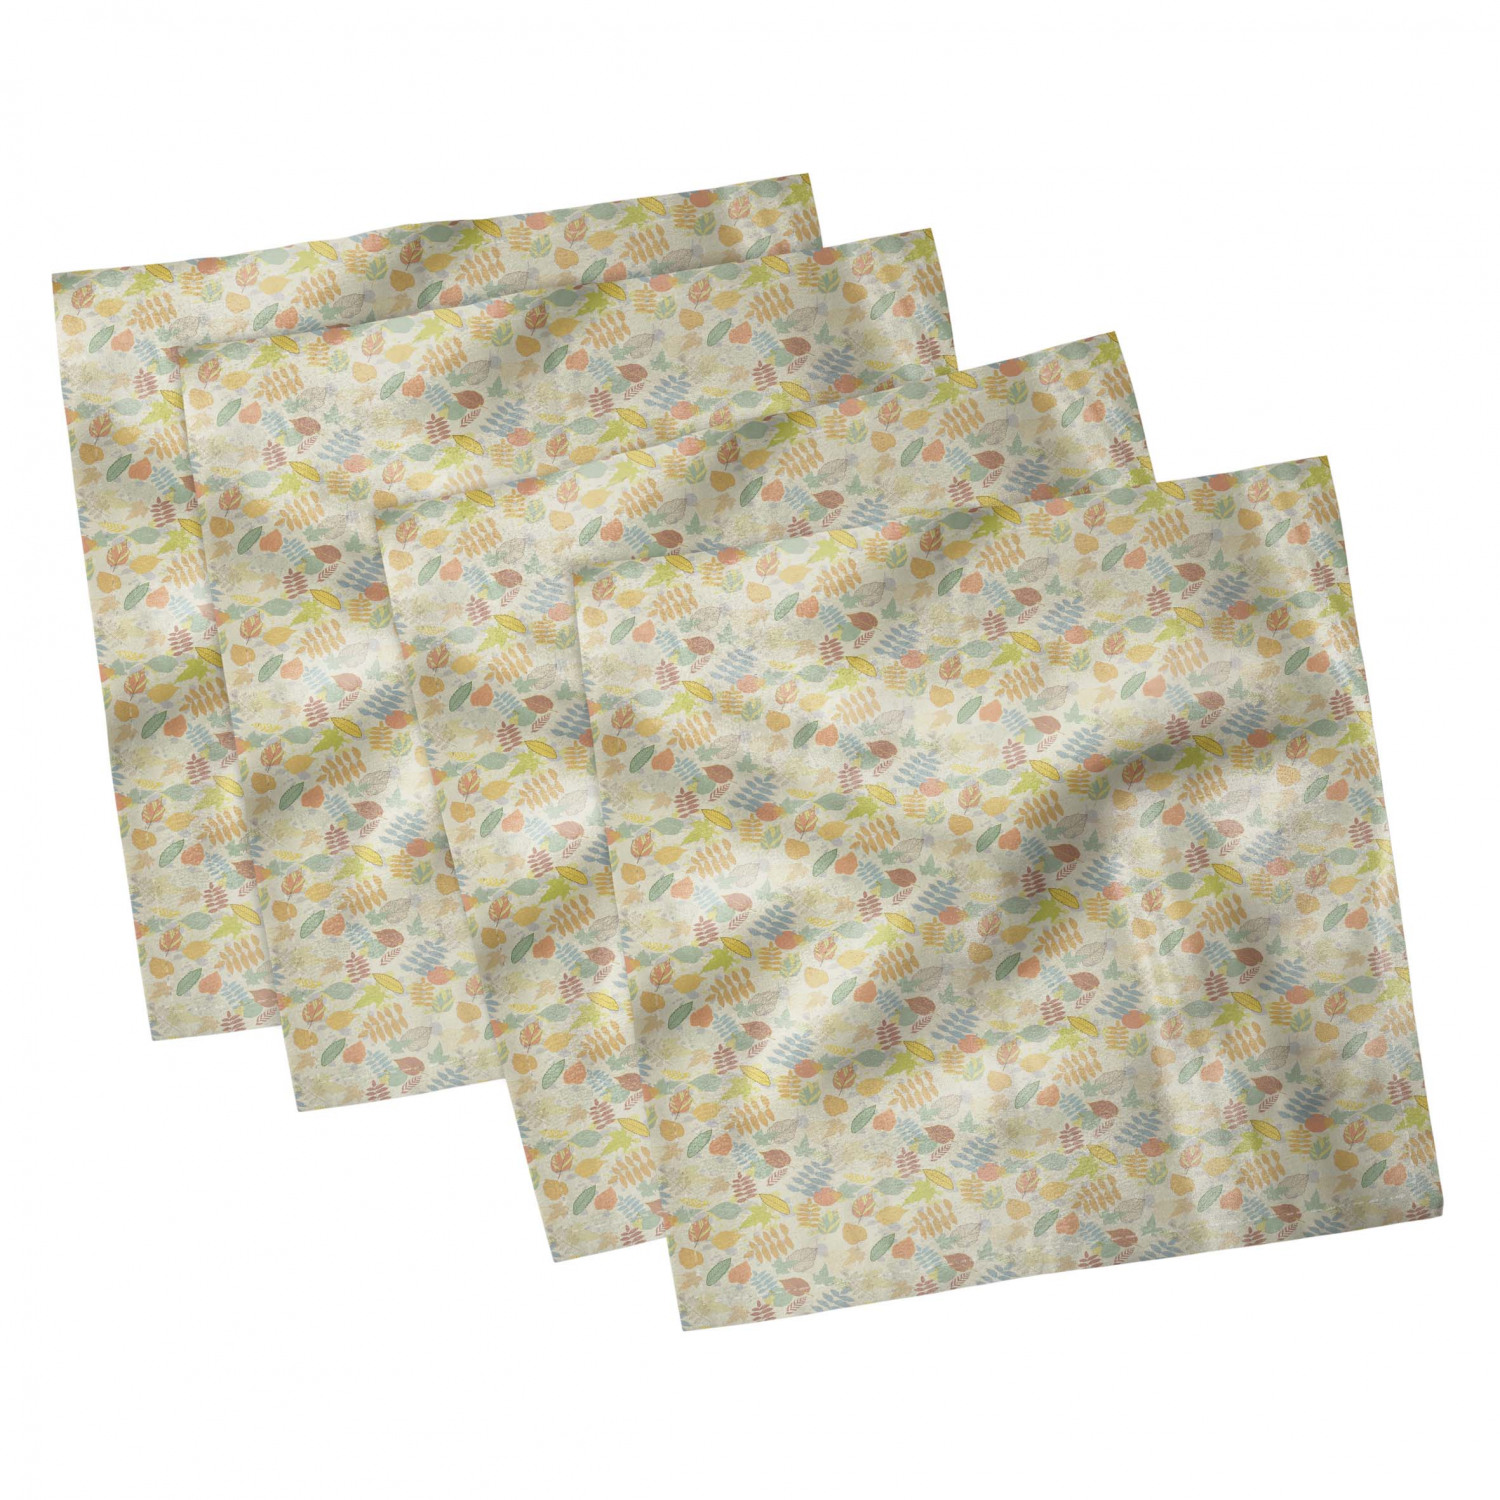 thumbnail 113 - Ambesonne-Autumn-Fall-Decorative-Satin-Napkins-Set-of-4-Party-Dinner-Fabric